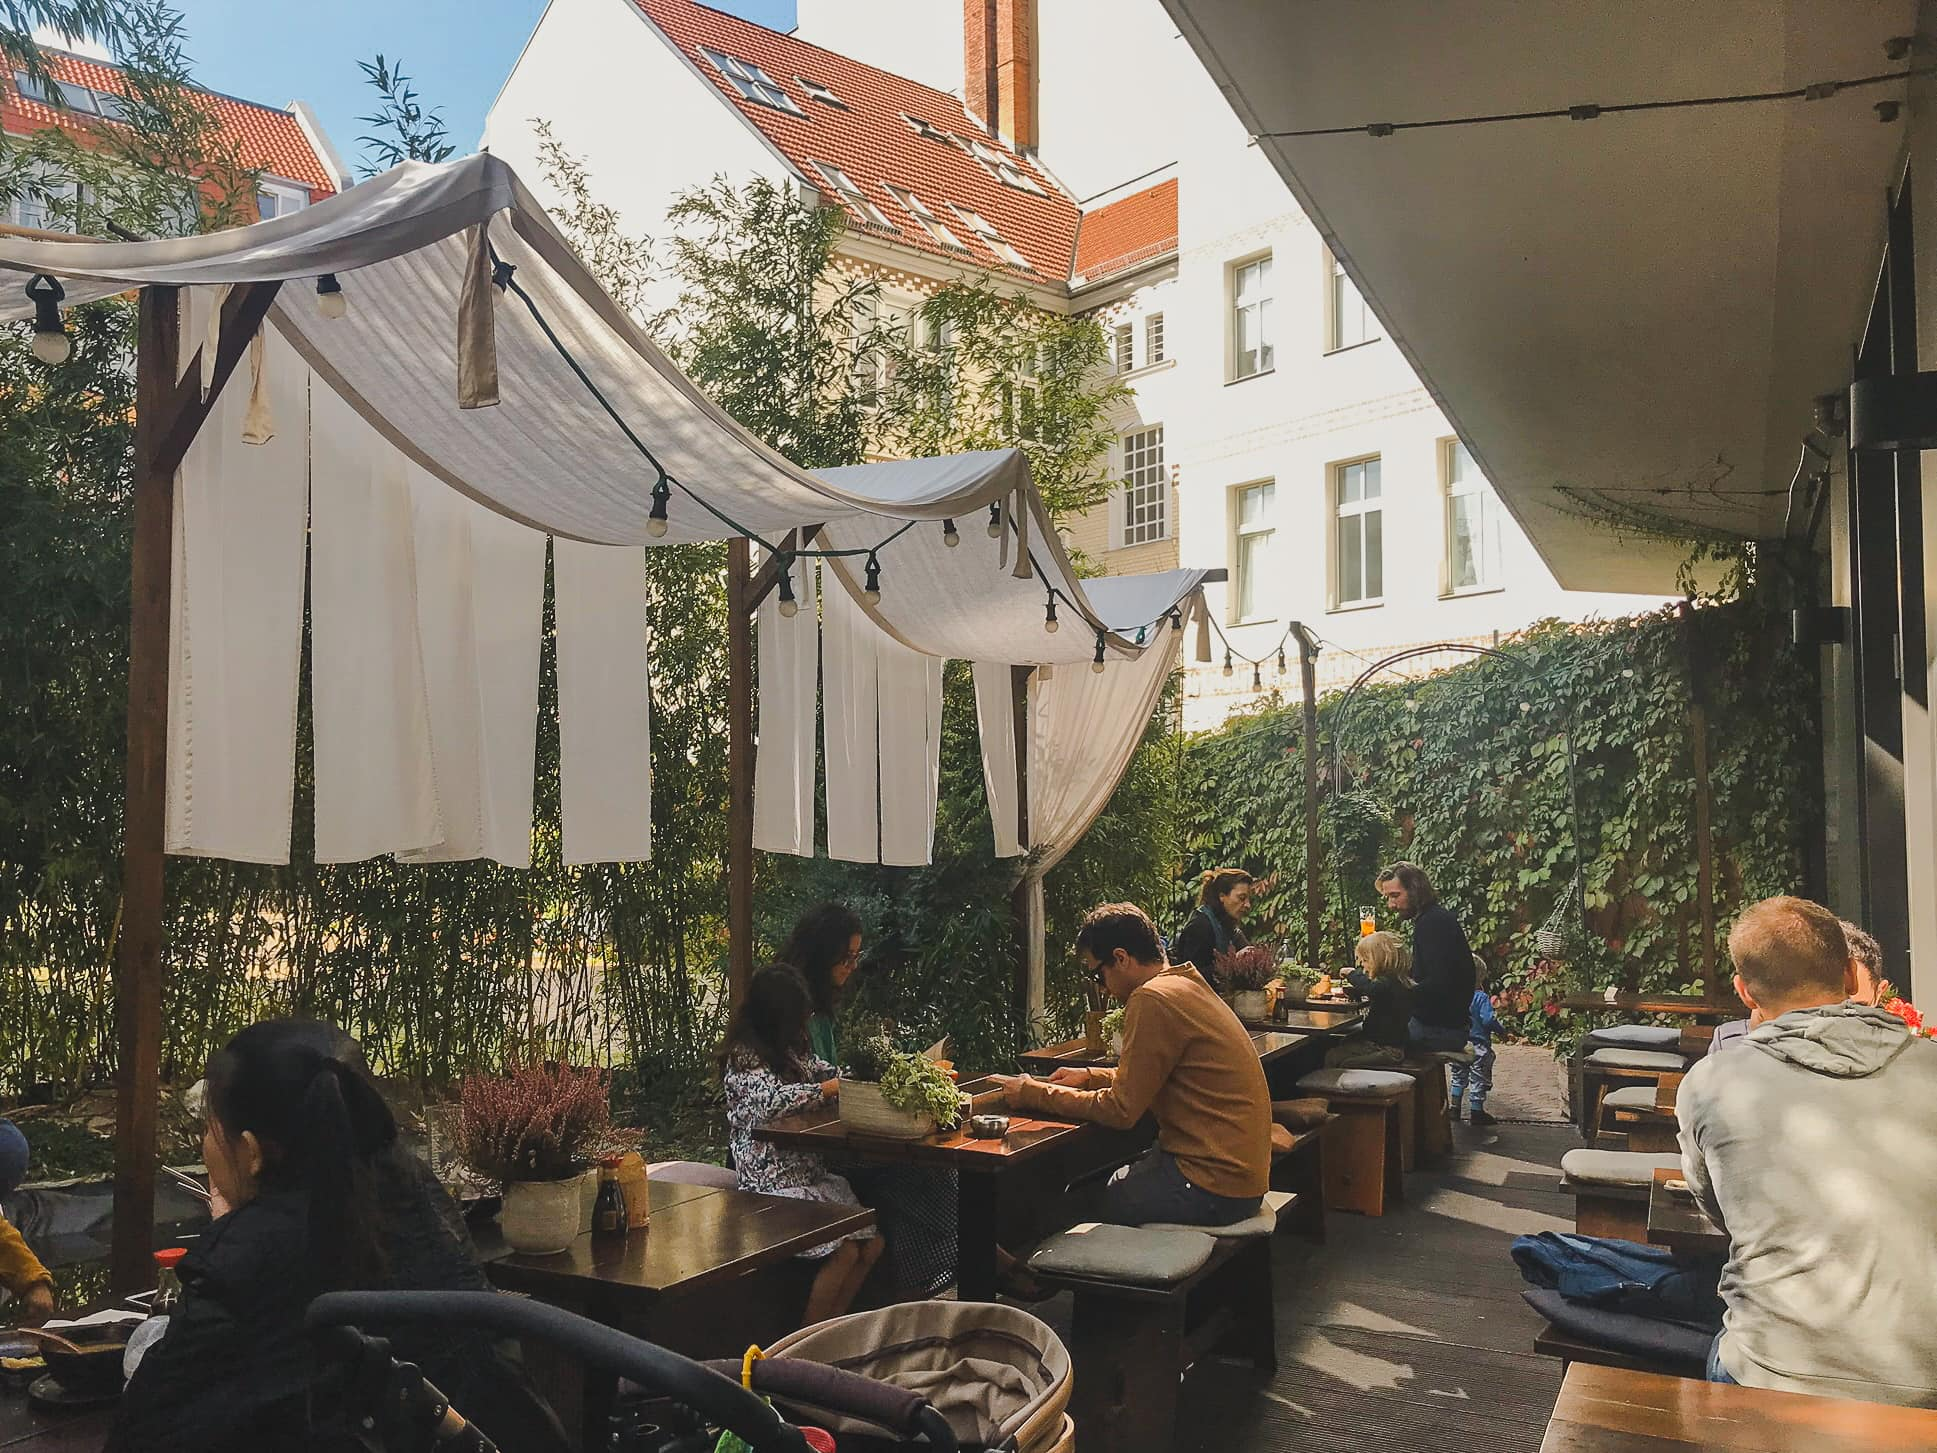 Berlin is a cheaper city to visit in Europe